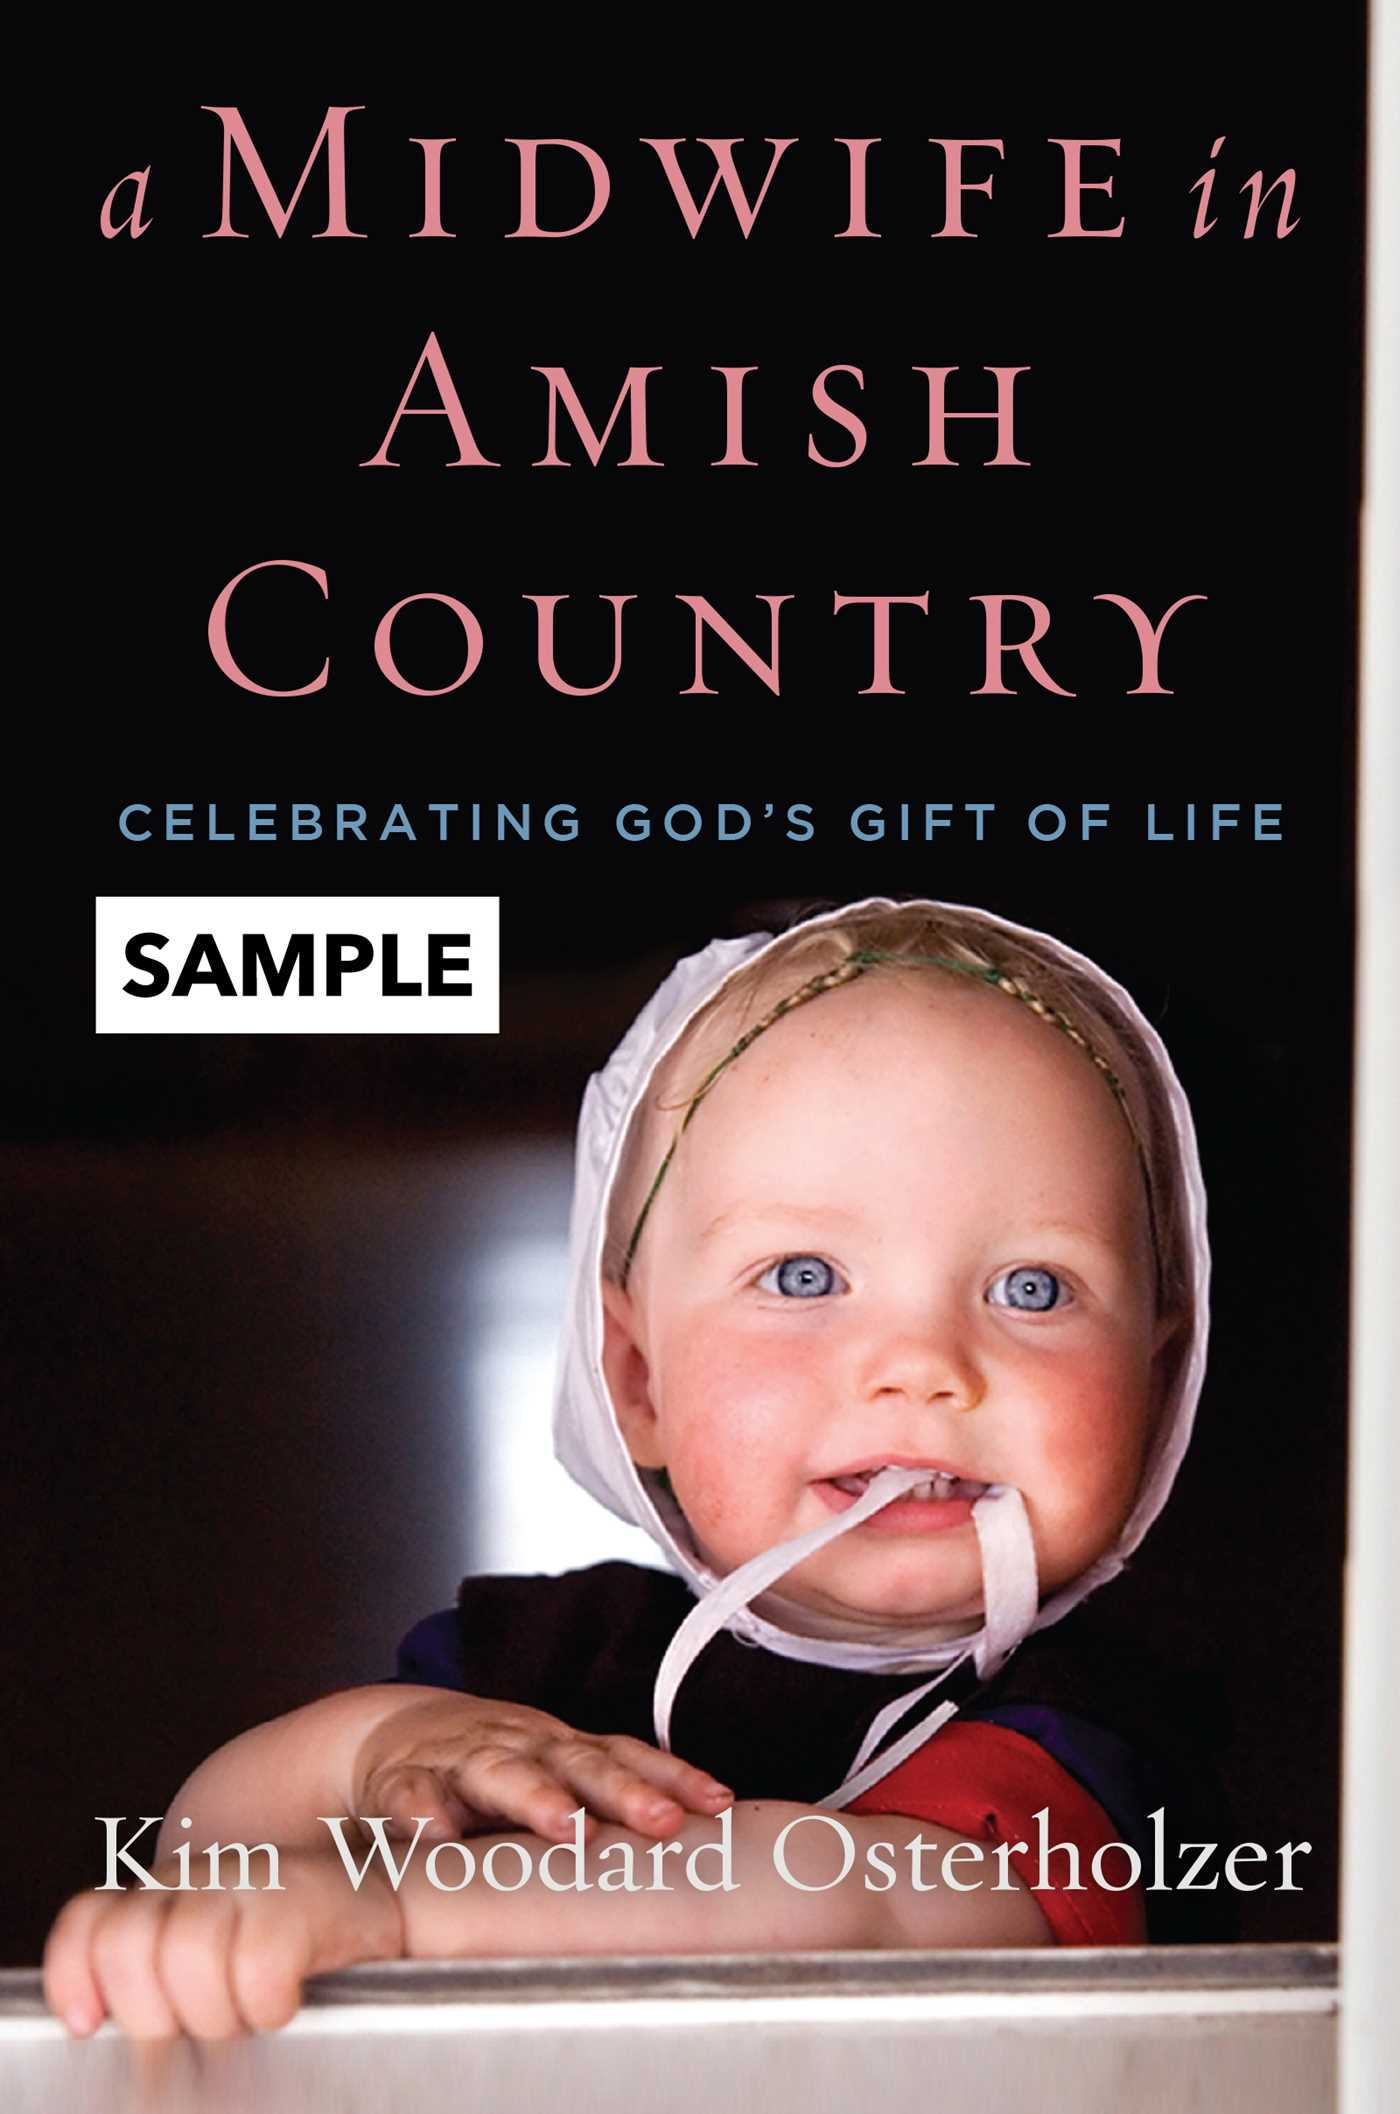 A midwife in amish country sample 9781621578574 hr